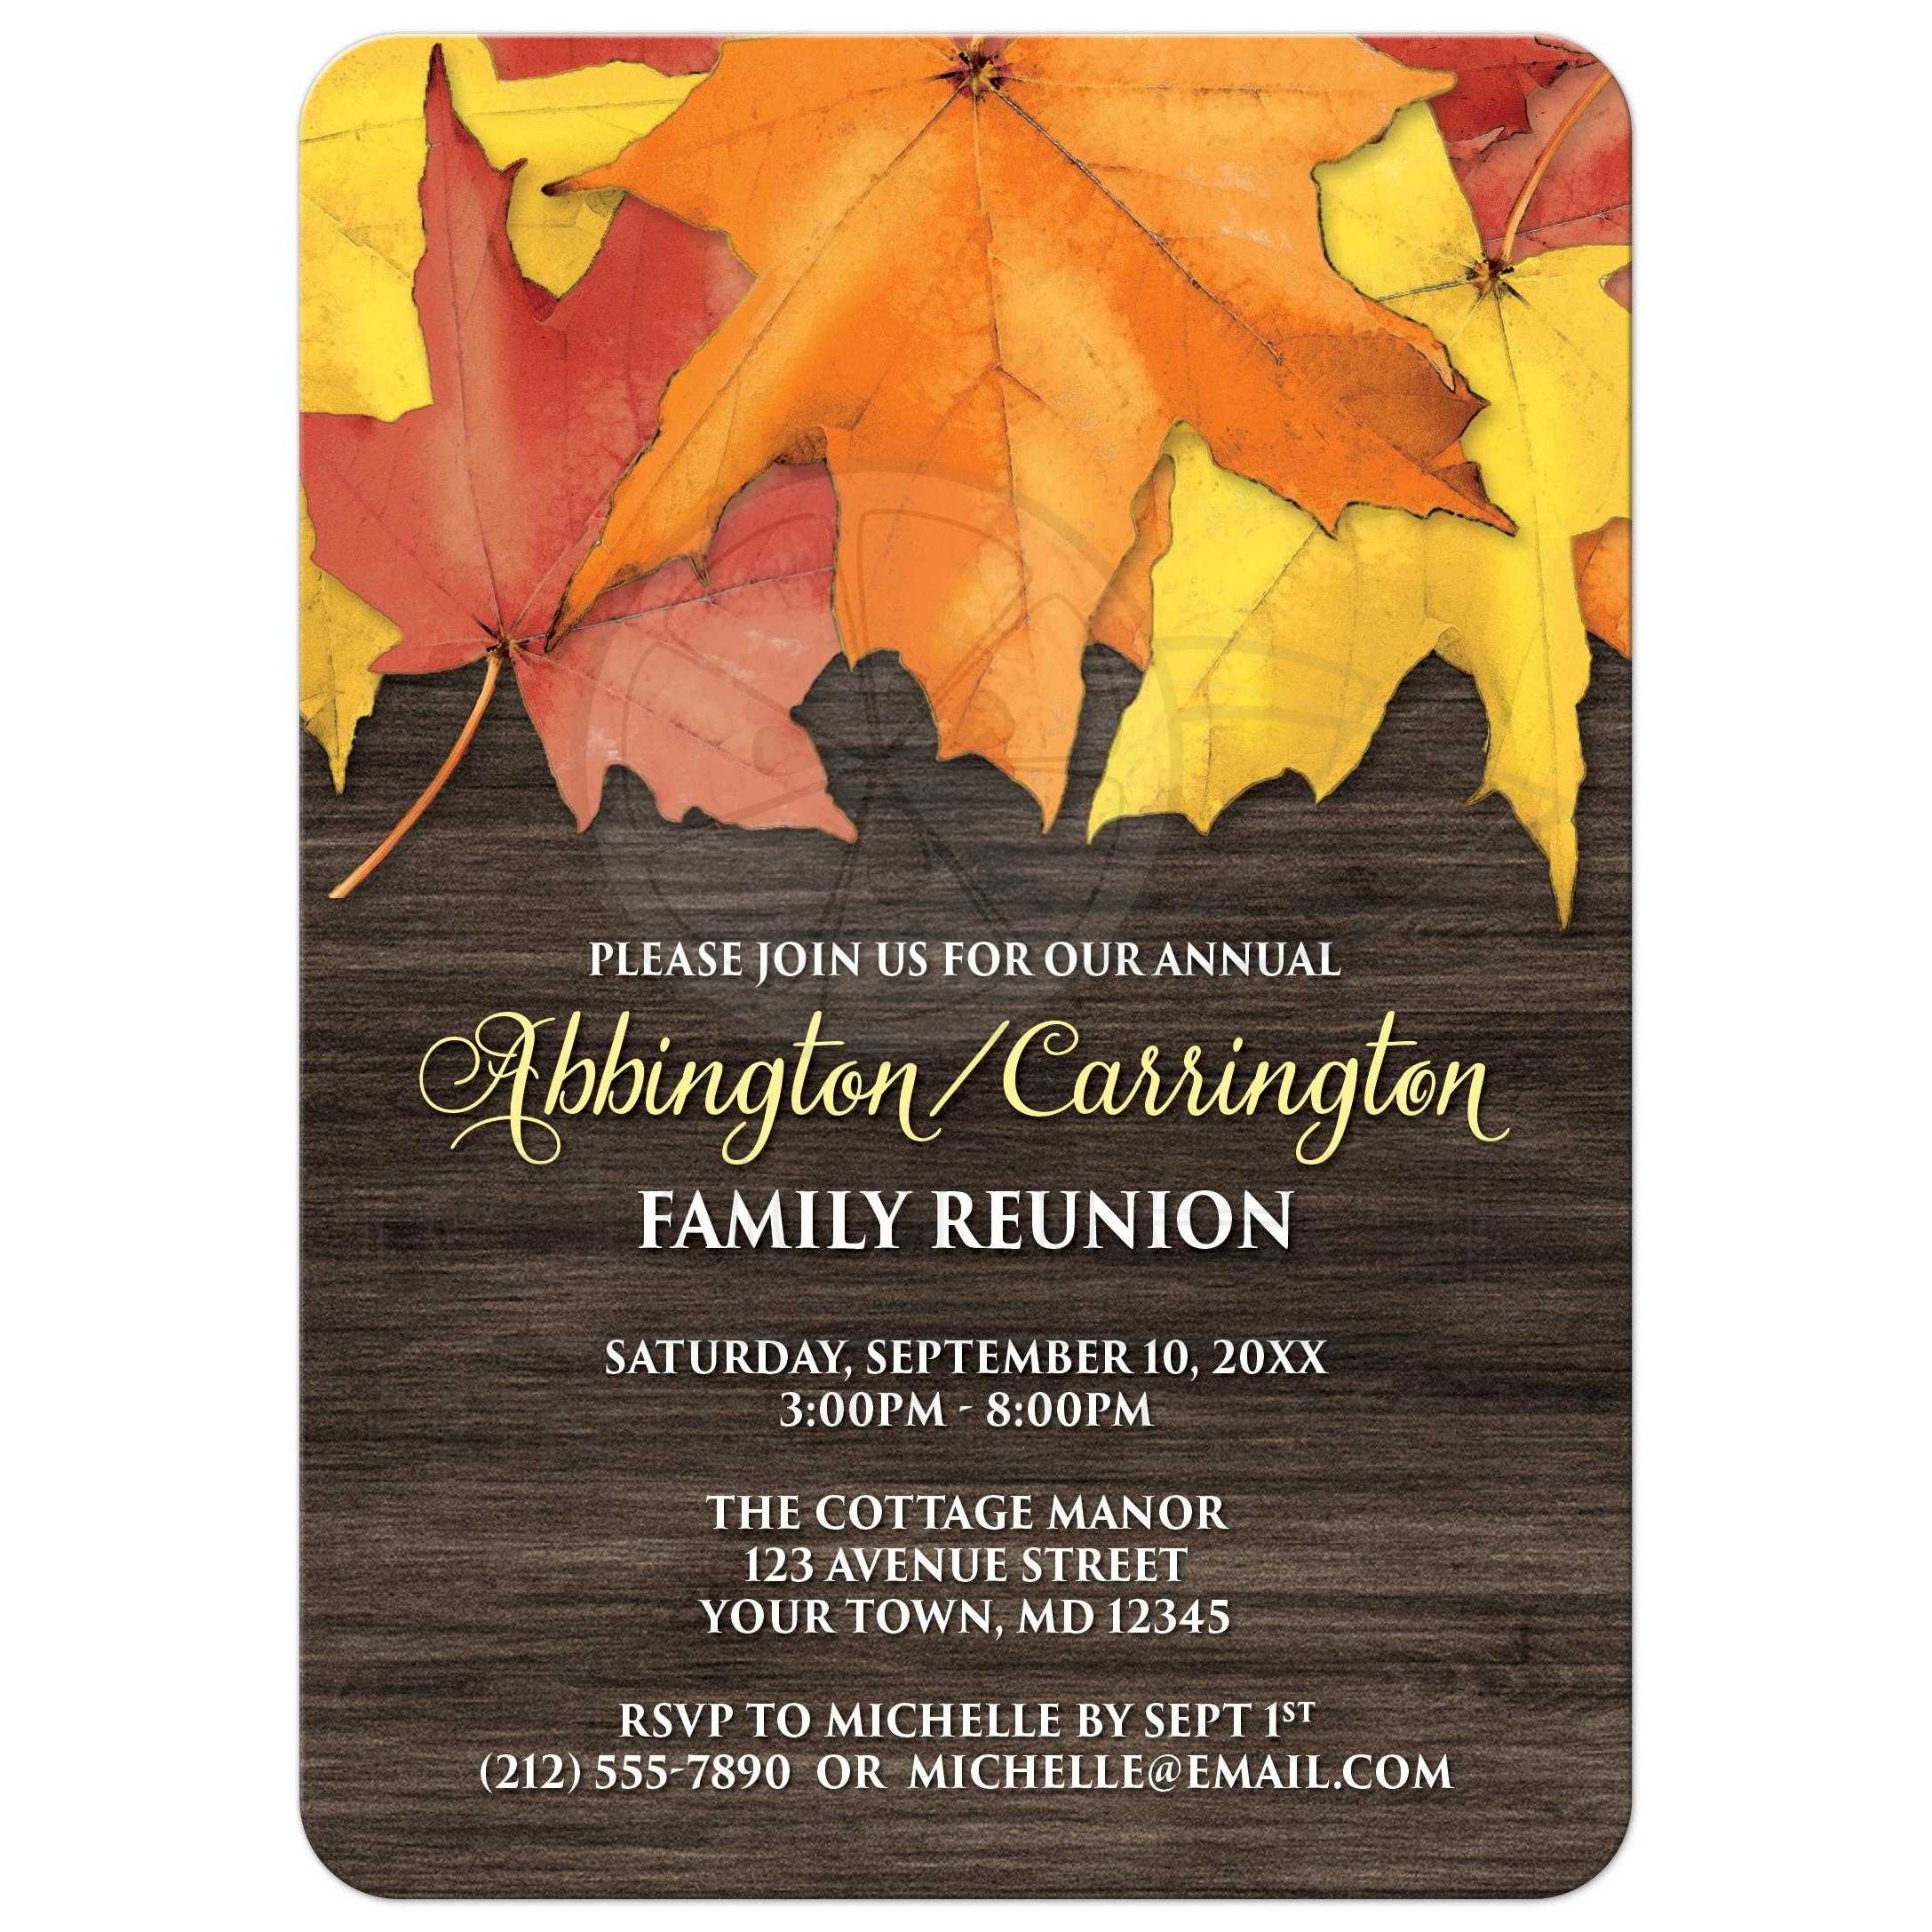 kitchen favor ideas html with Family Reunion Invitations Rustic Autumn Leaves And Wood on Wedding Vow Art in addition Any Anniversary Invitation Card Optional Photos Purple And Gold Damask Scrolls as well Tea Time Party additionally Stock Illustration Happy Family Cartoon in addition Colorful Trolls Birthday Party.